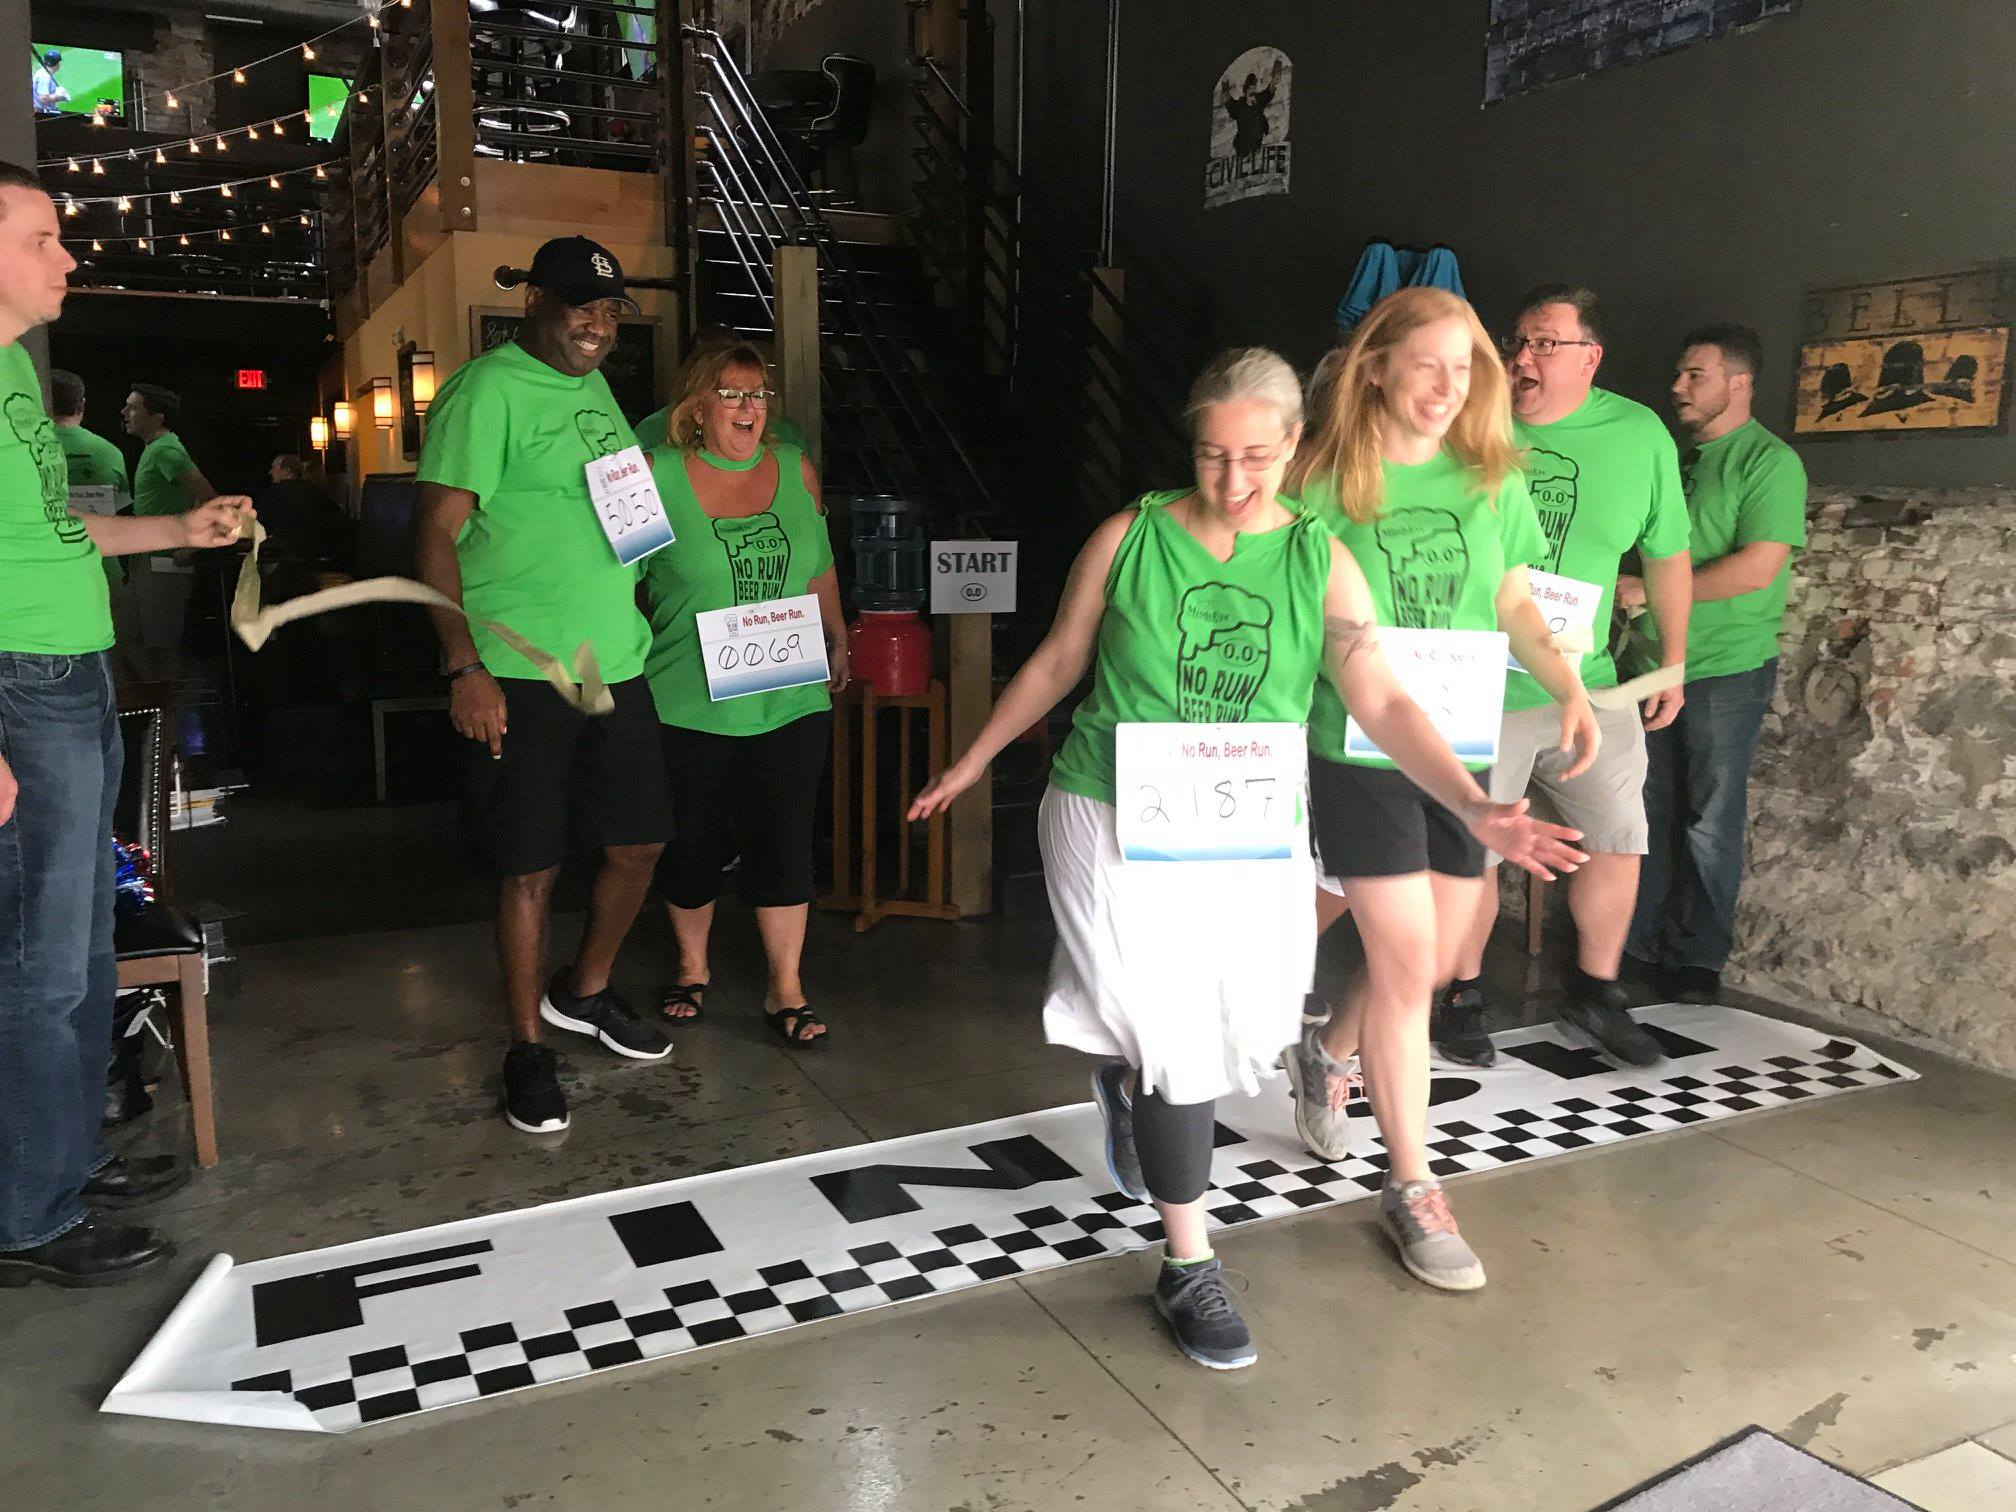 A group of five adults dressed in bright green t-shirts with No Run, Beer Run across the front run through a gold finish line while holding beers.